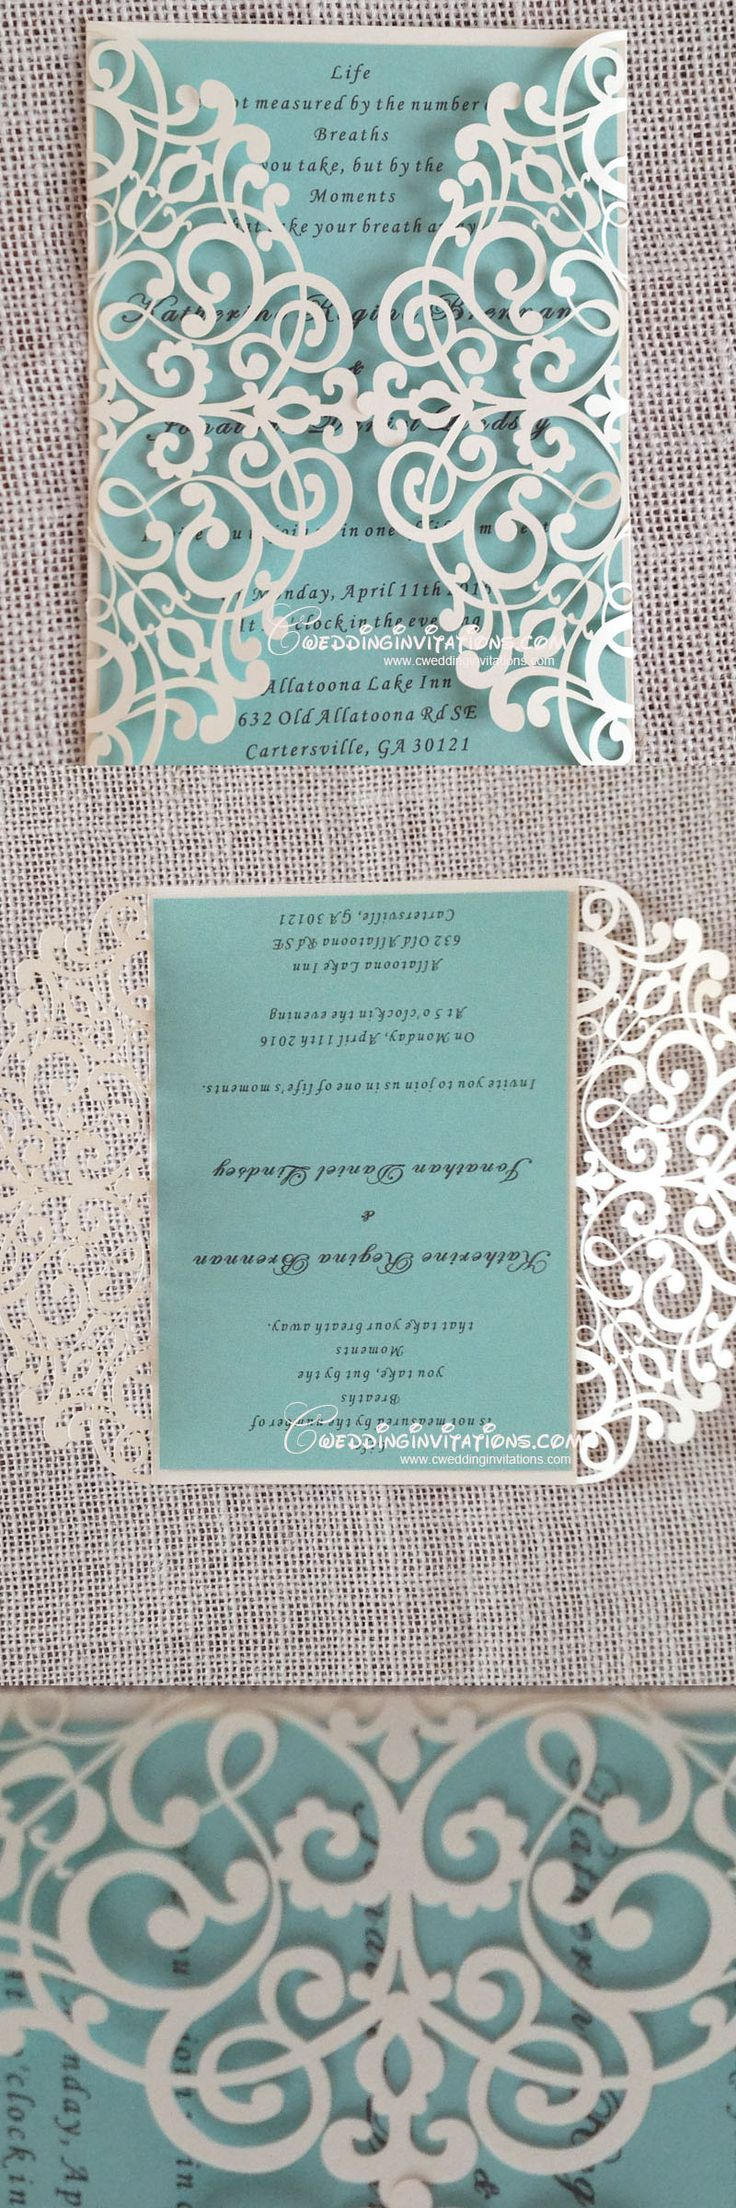 tiffany blue laser cut wedding invitations, laser cut wedding invitations, wedding invitations, wedding cards, www.cweddinginvitations.com Rockwell Catering and Events